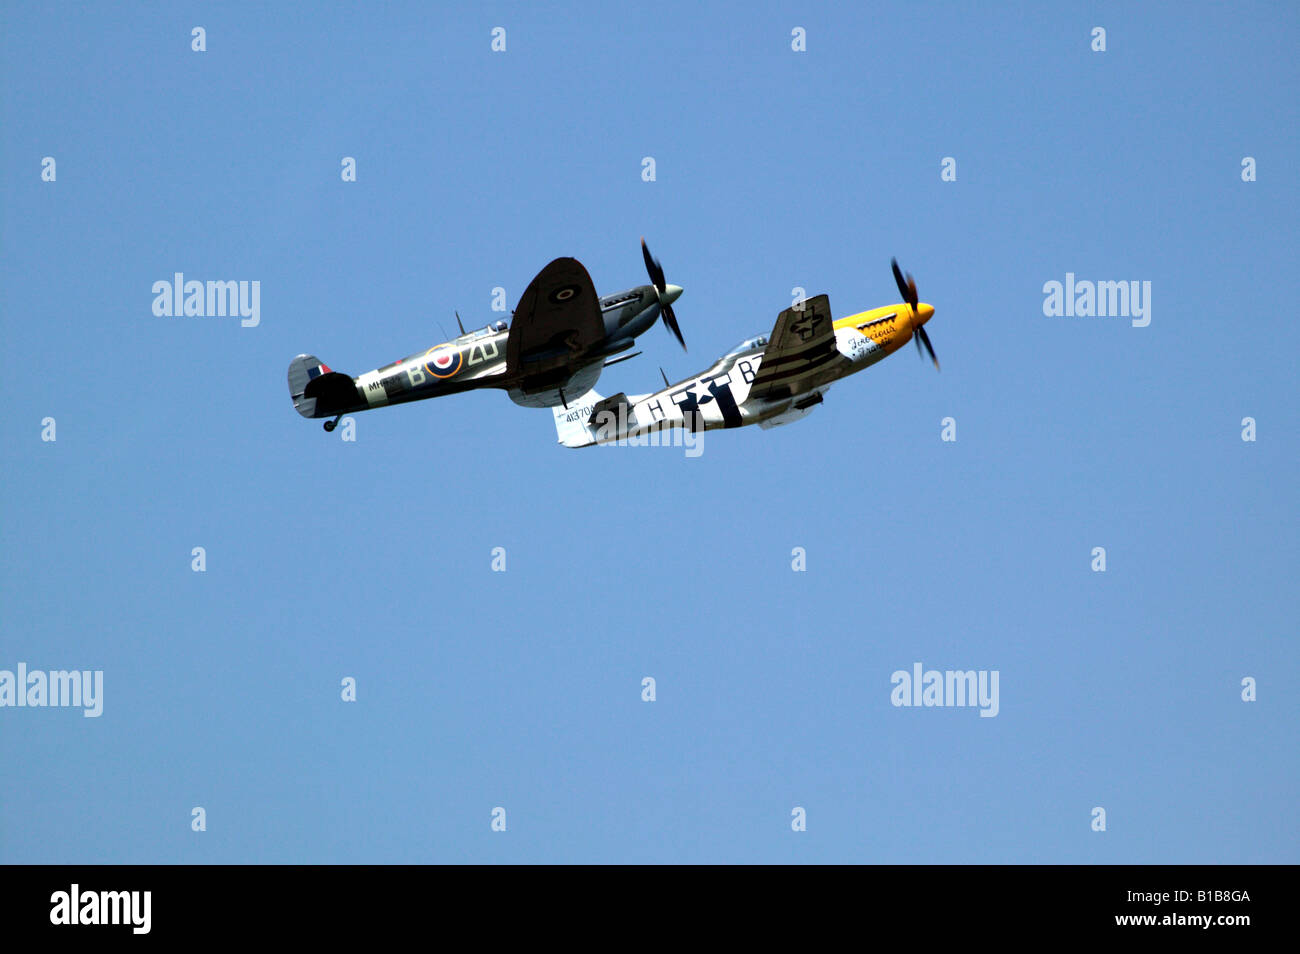 North American P-51 D Mustang Ferocious Frankie and Vickers Supermarine Spitfire MH 434 winning the best team trophy Stock Photo